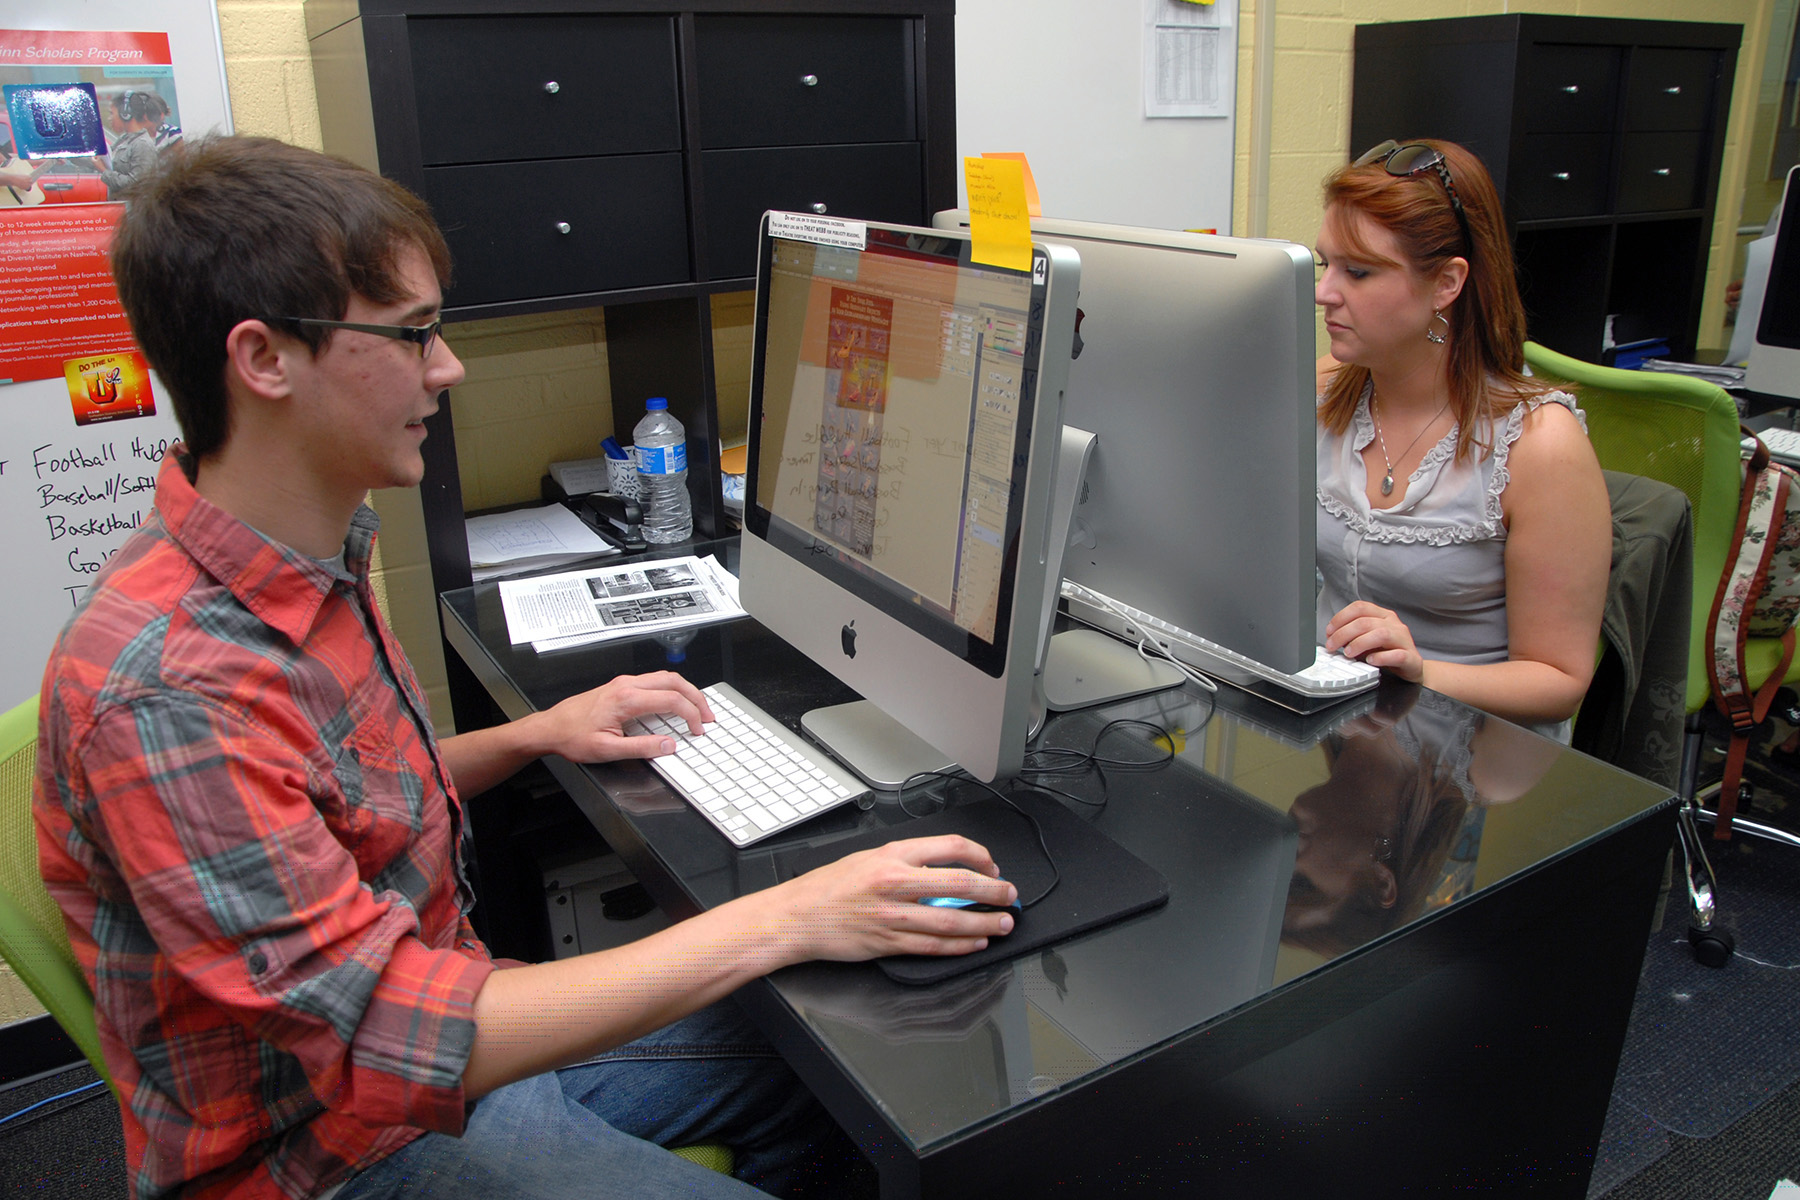 Male and female student using computers